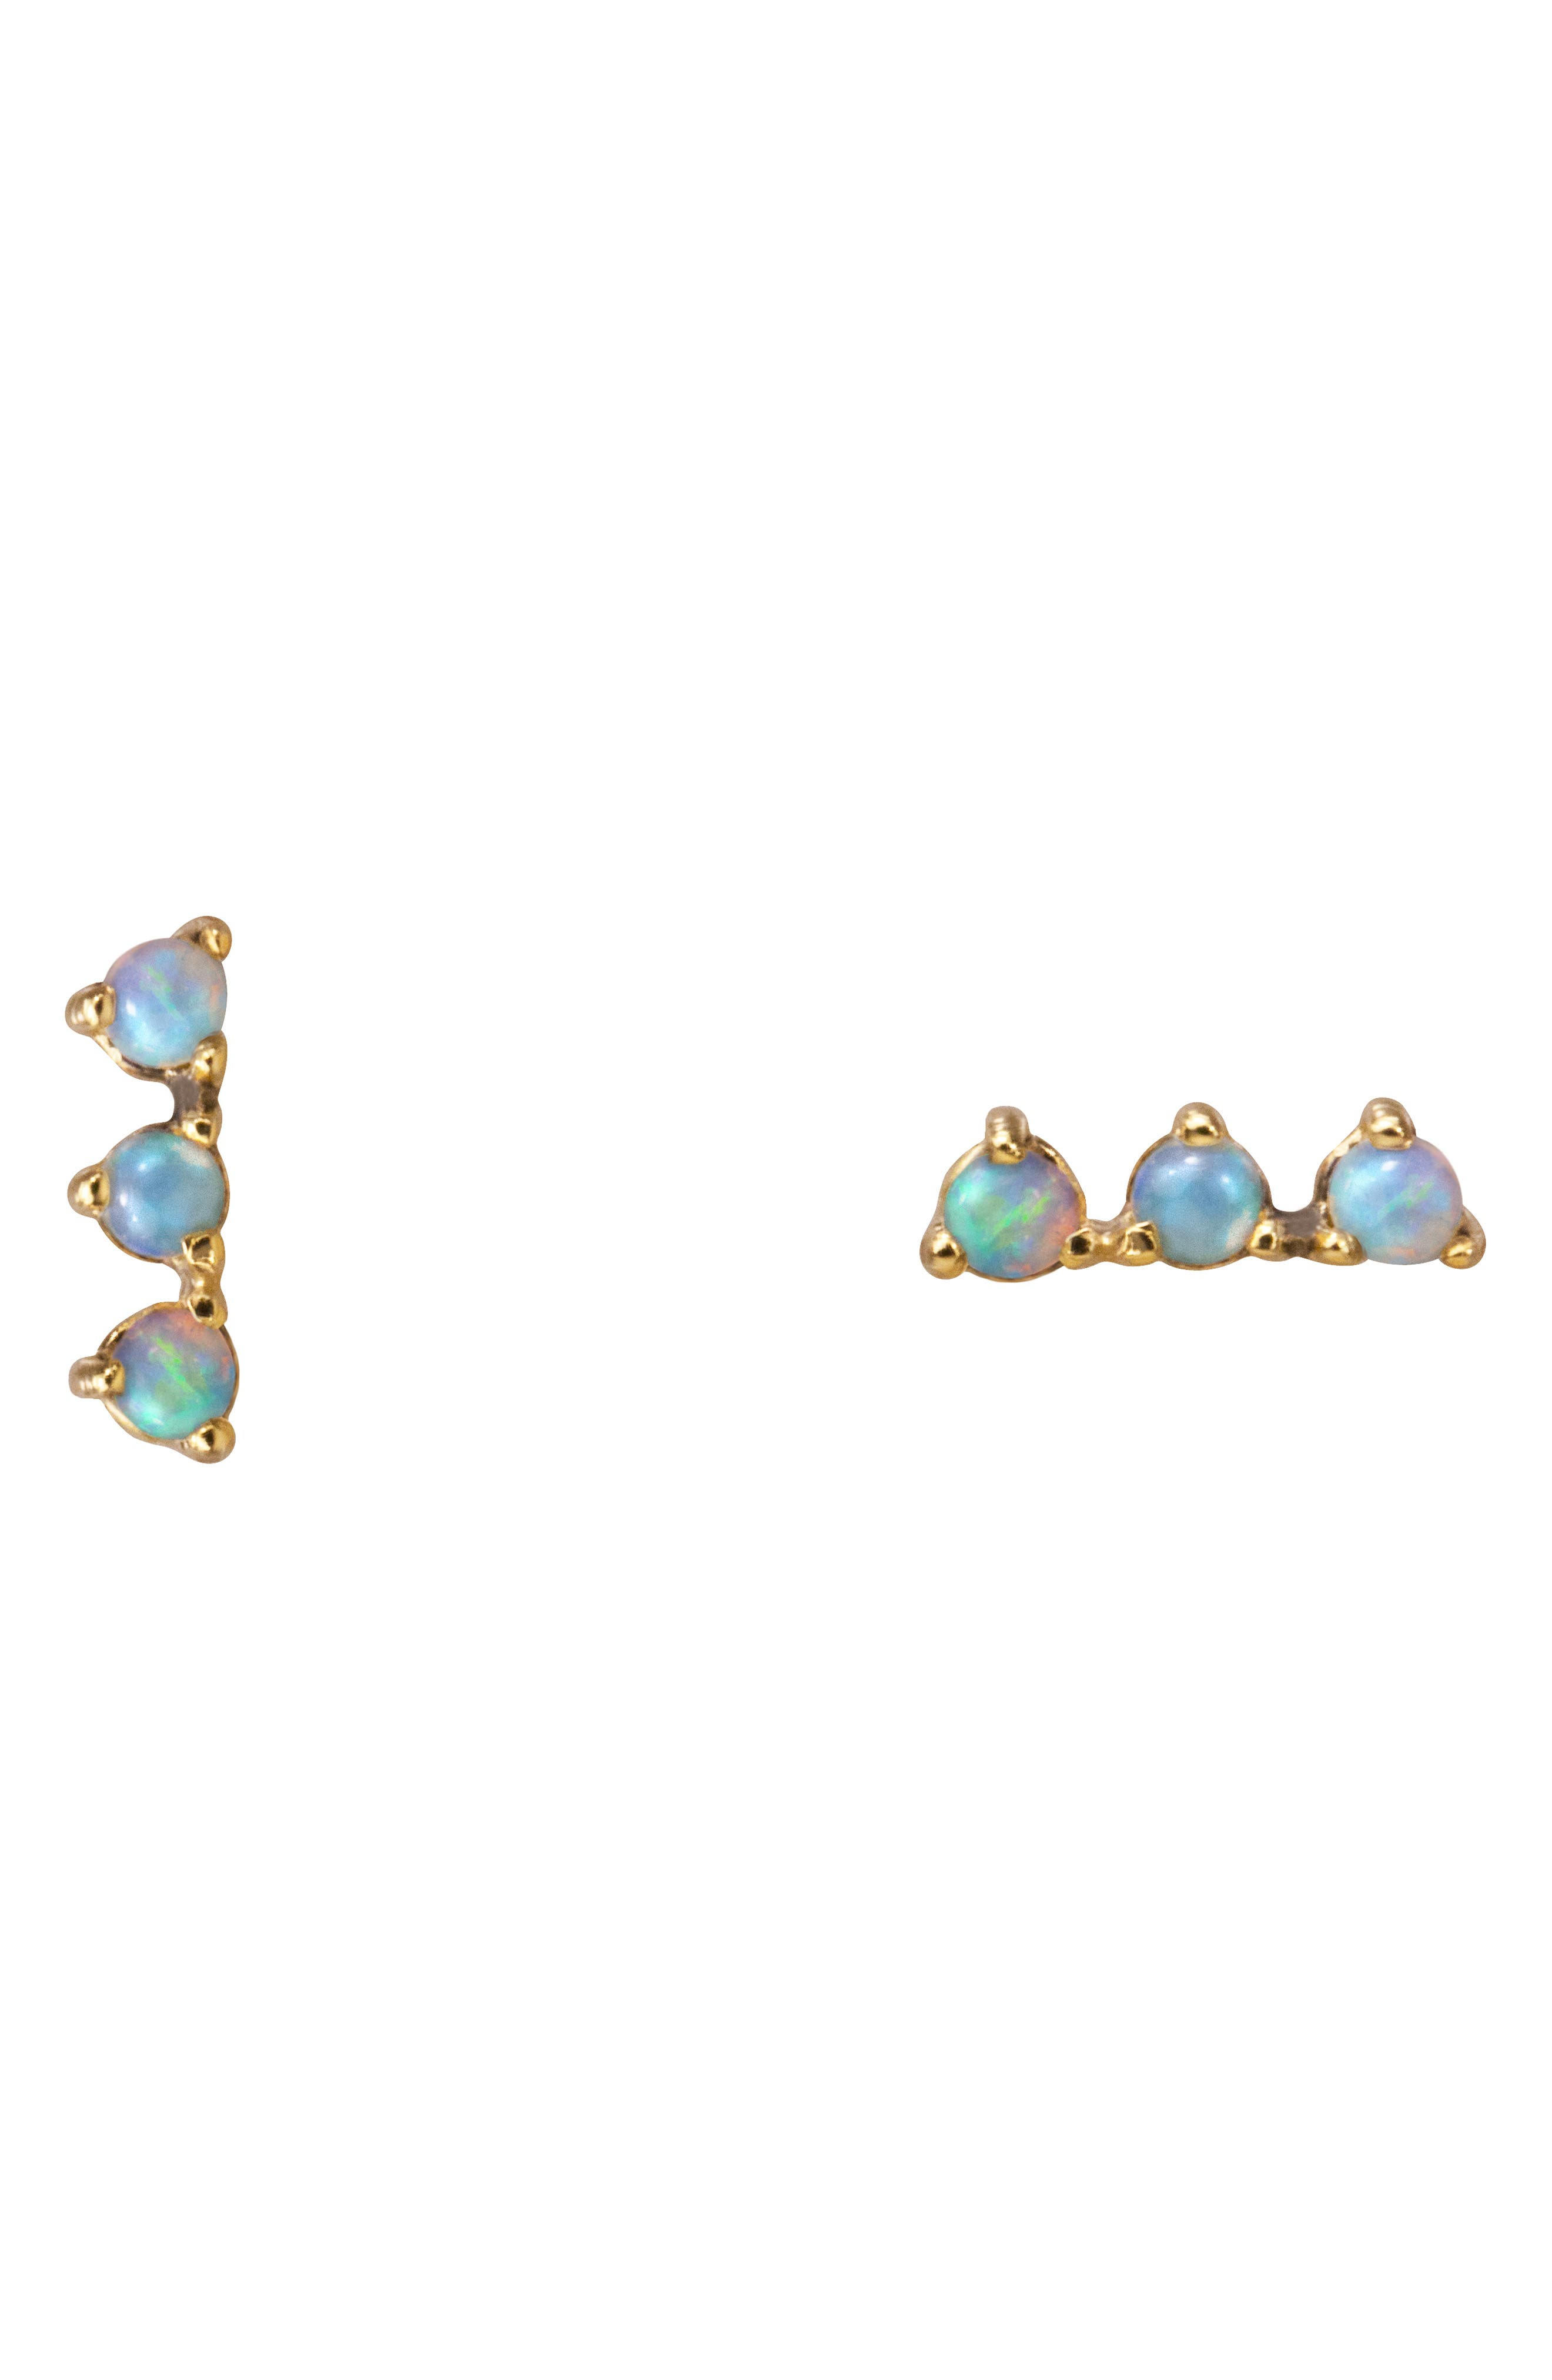 Counting Collection Three-Step Opal & Diamond Statement Earrings,                             Main thumbnail 1, color,                             PINK TOURMALINE SUNSTONE WHITE